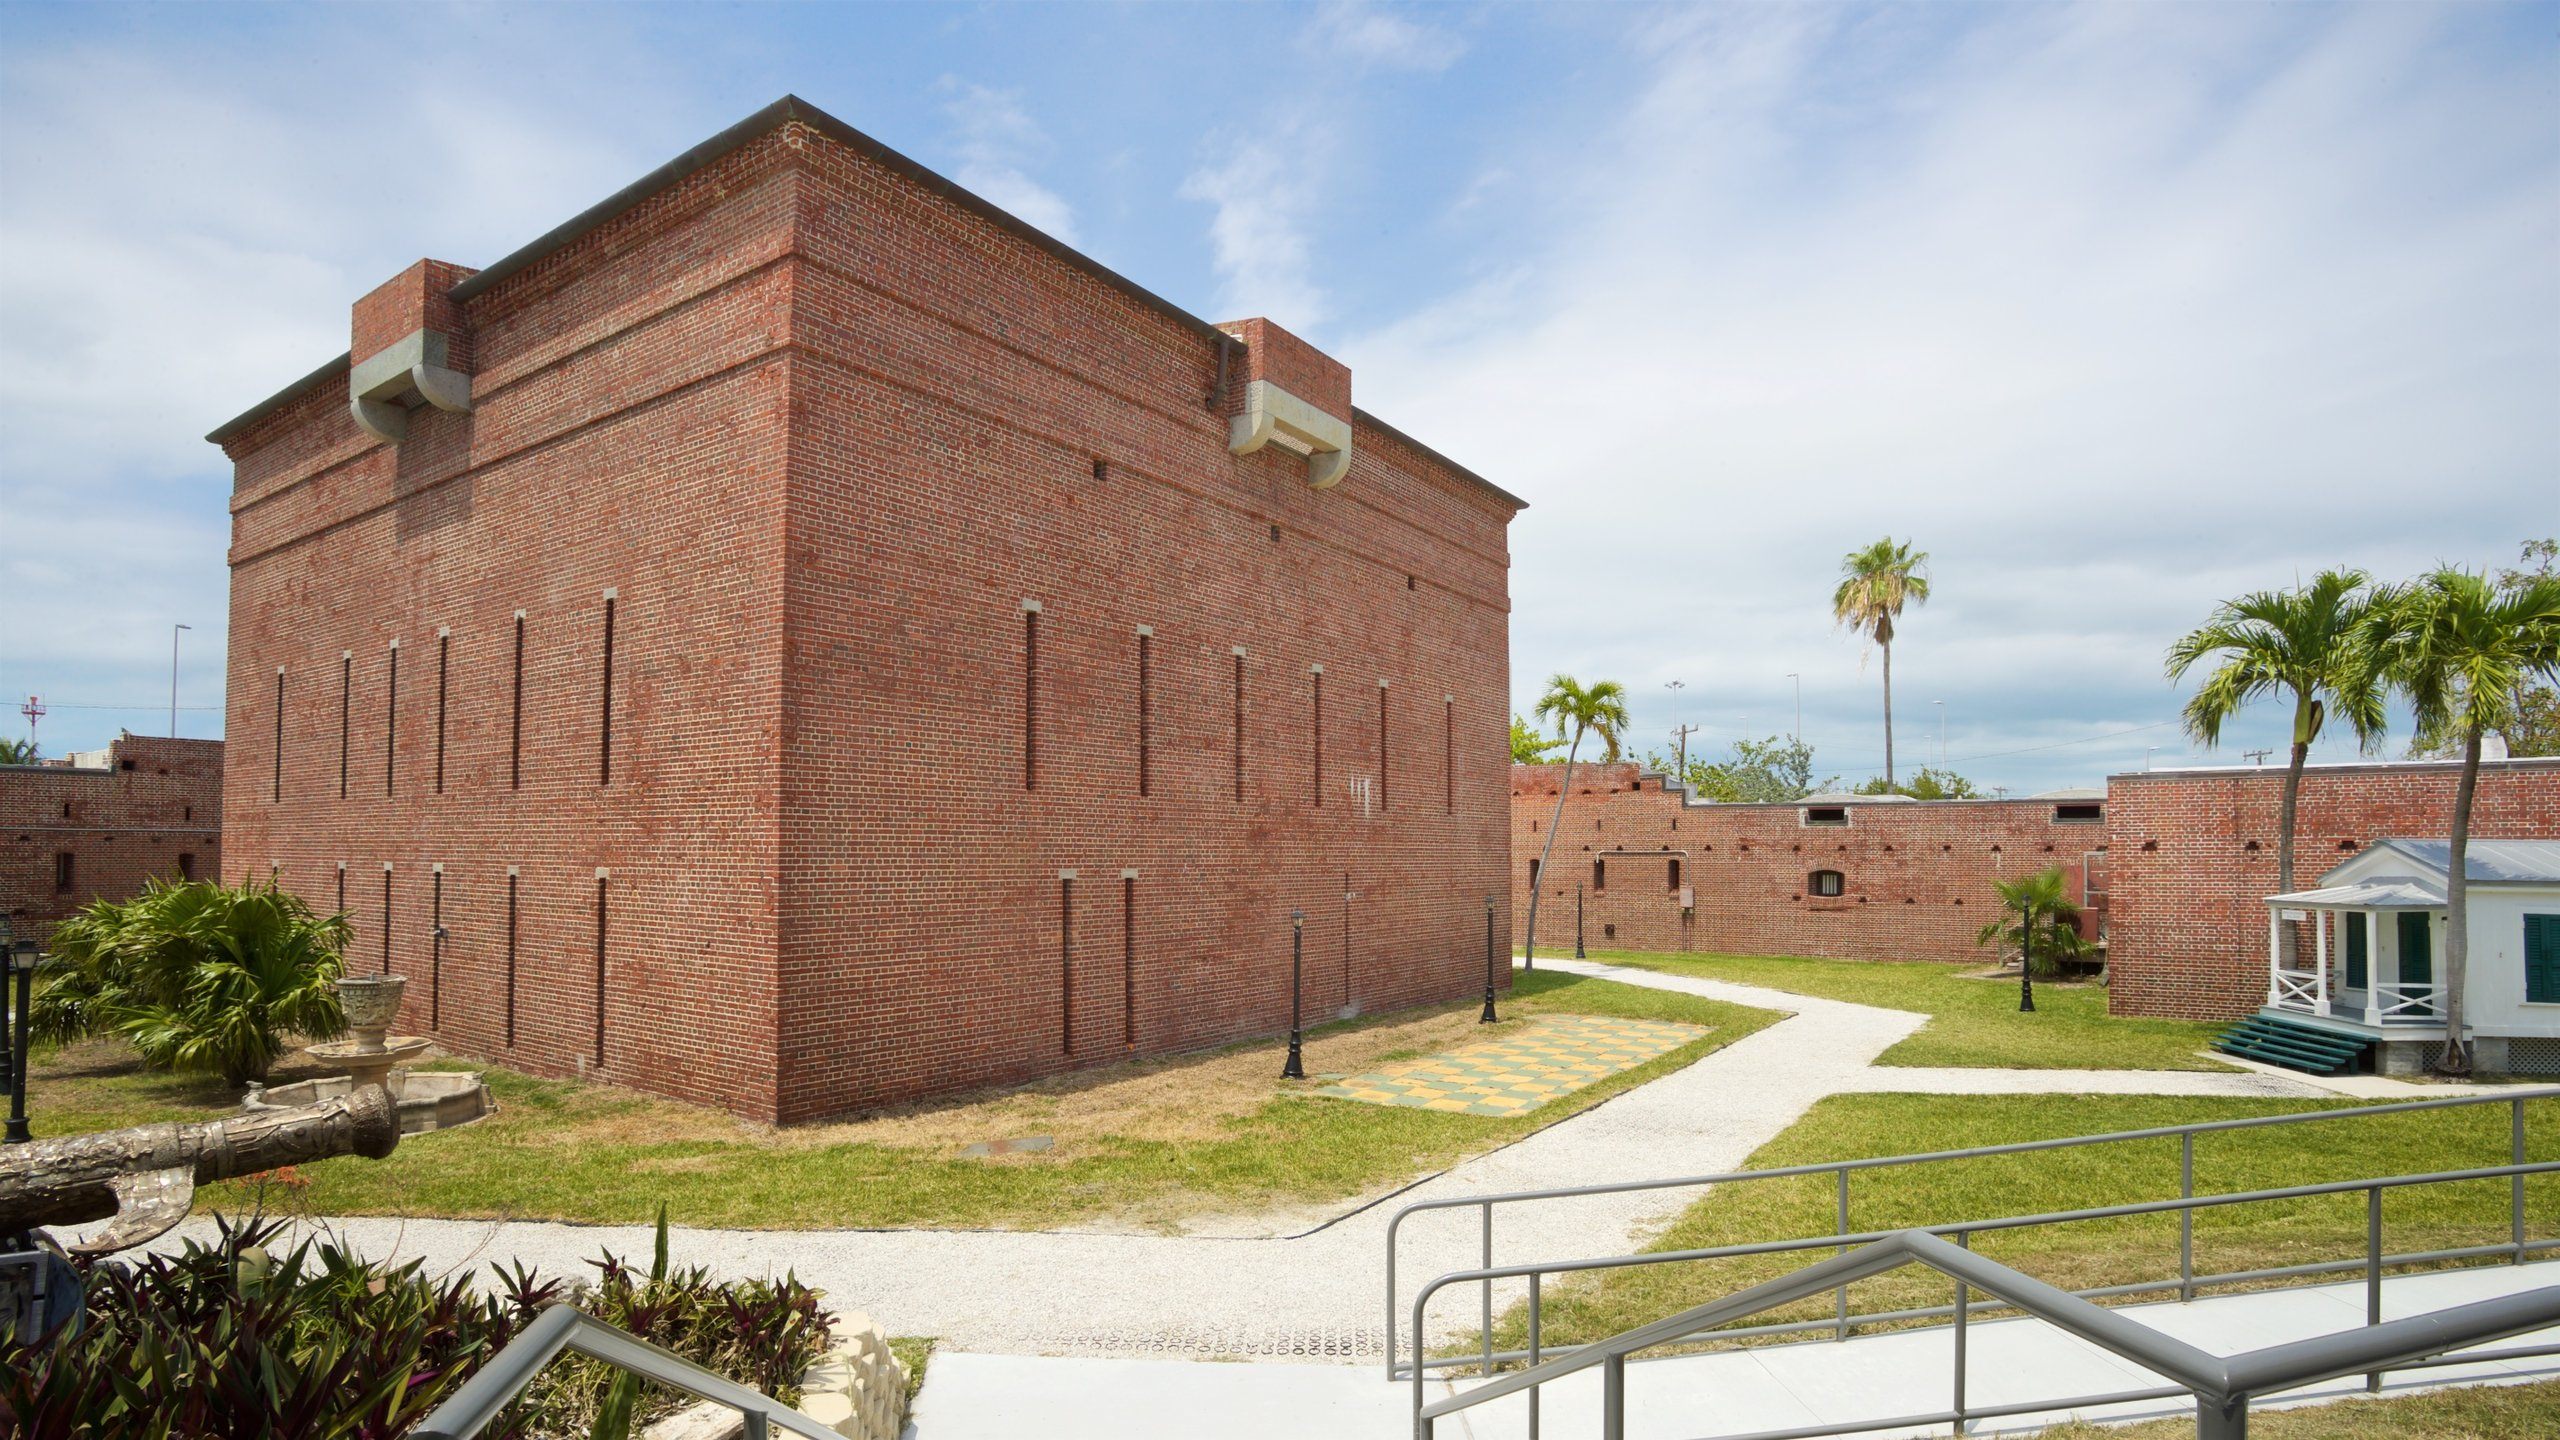 Fort East Martello Museum and Gallery, Key West, Florida, United States of America